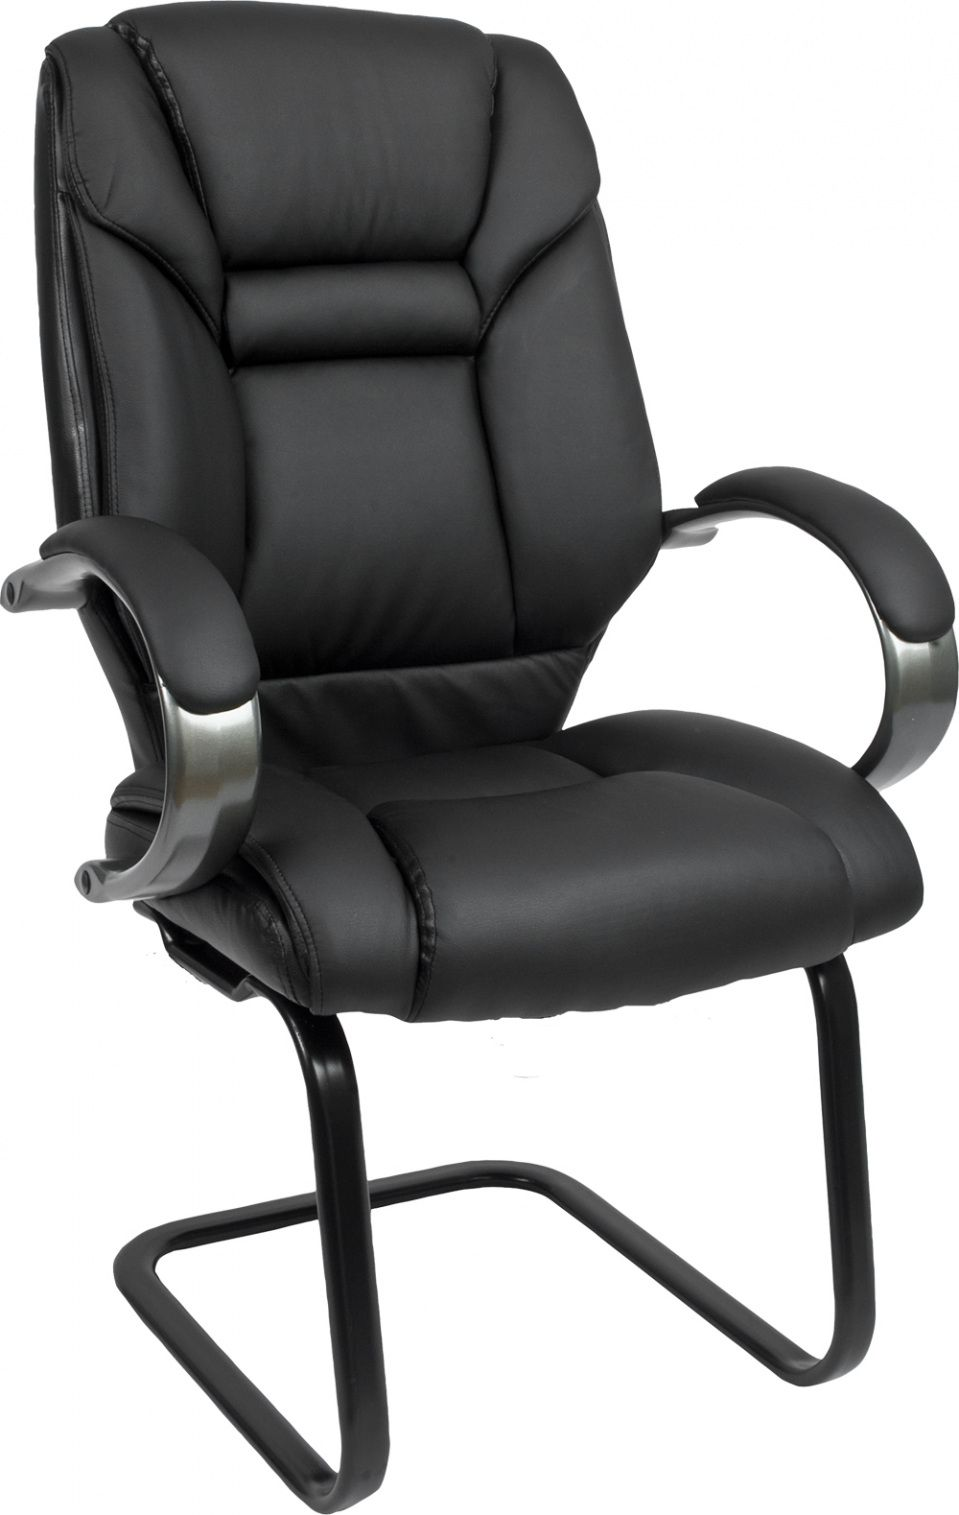 Stationary Office Chairs Contemporary Home Office Furniture